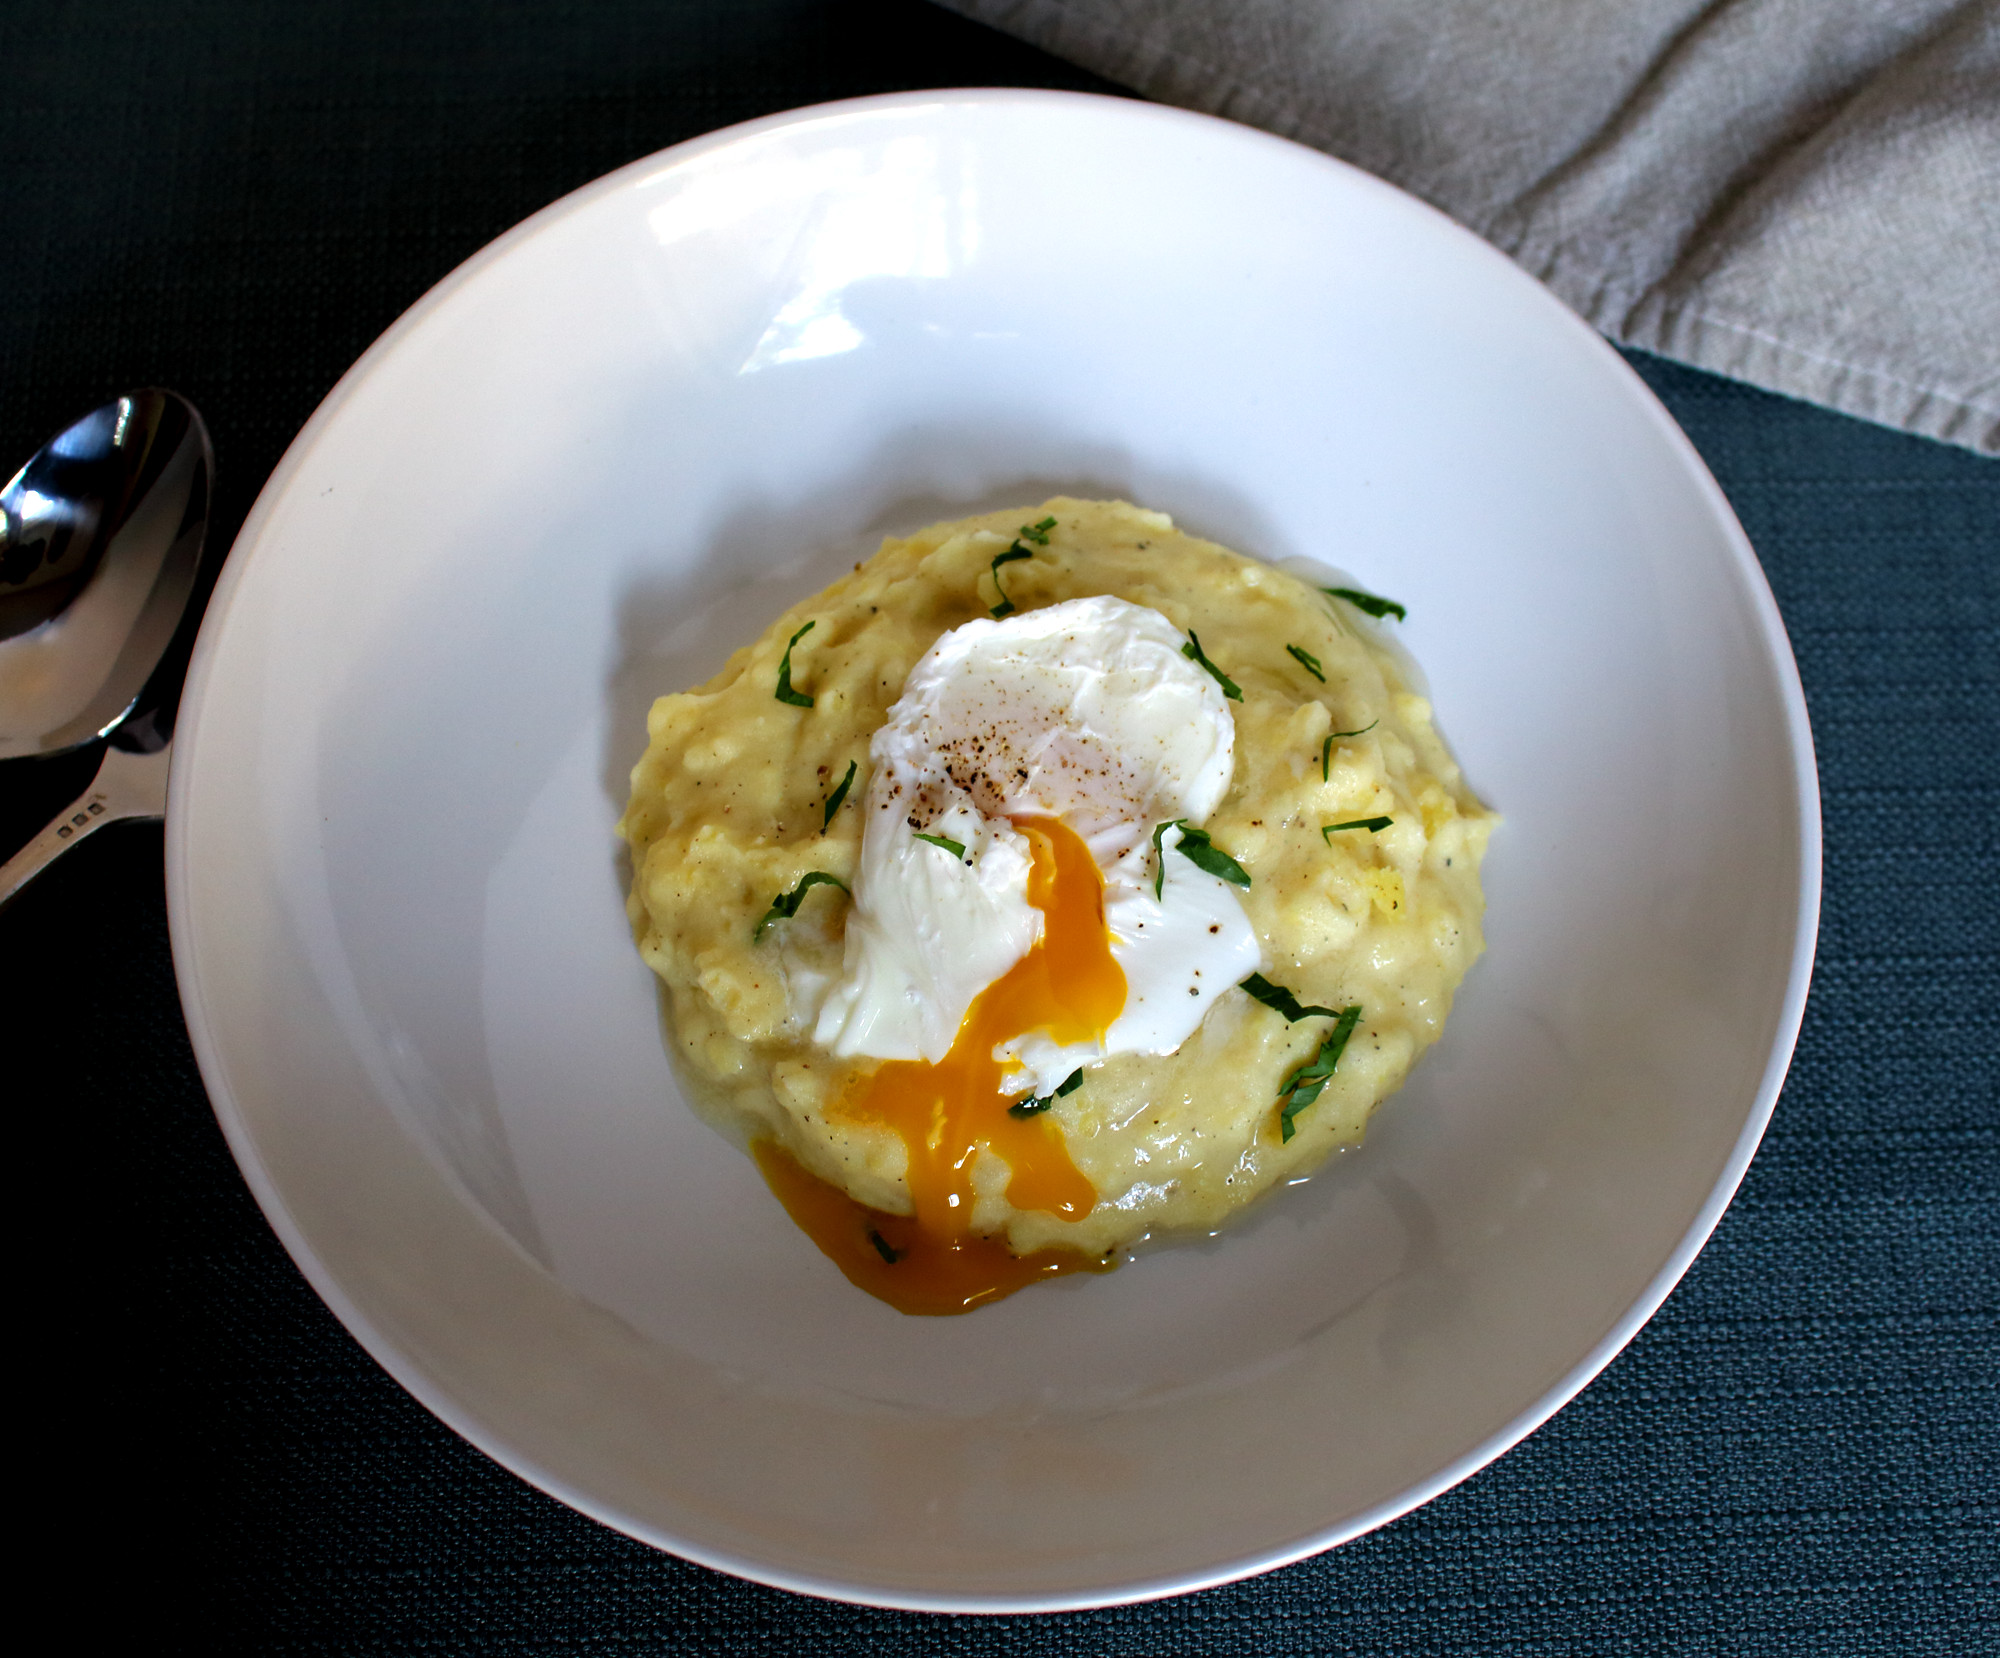 Breakfast Mashed Potatoes  Cheesy Breakfast Mashed Potatoes with a Poached Egg